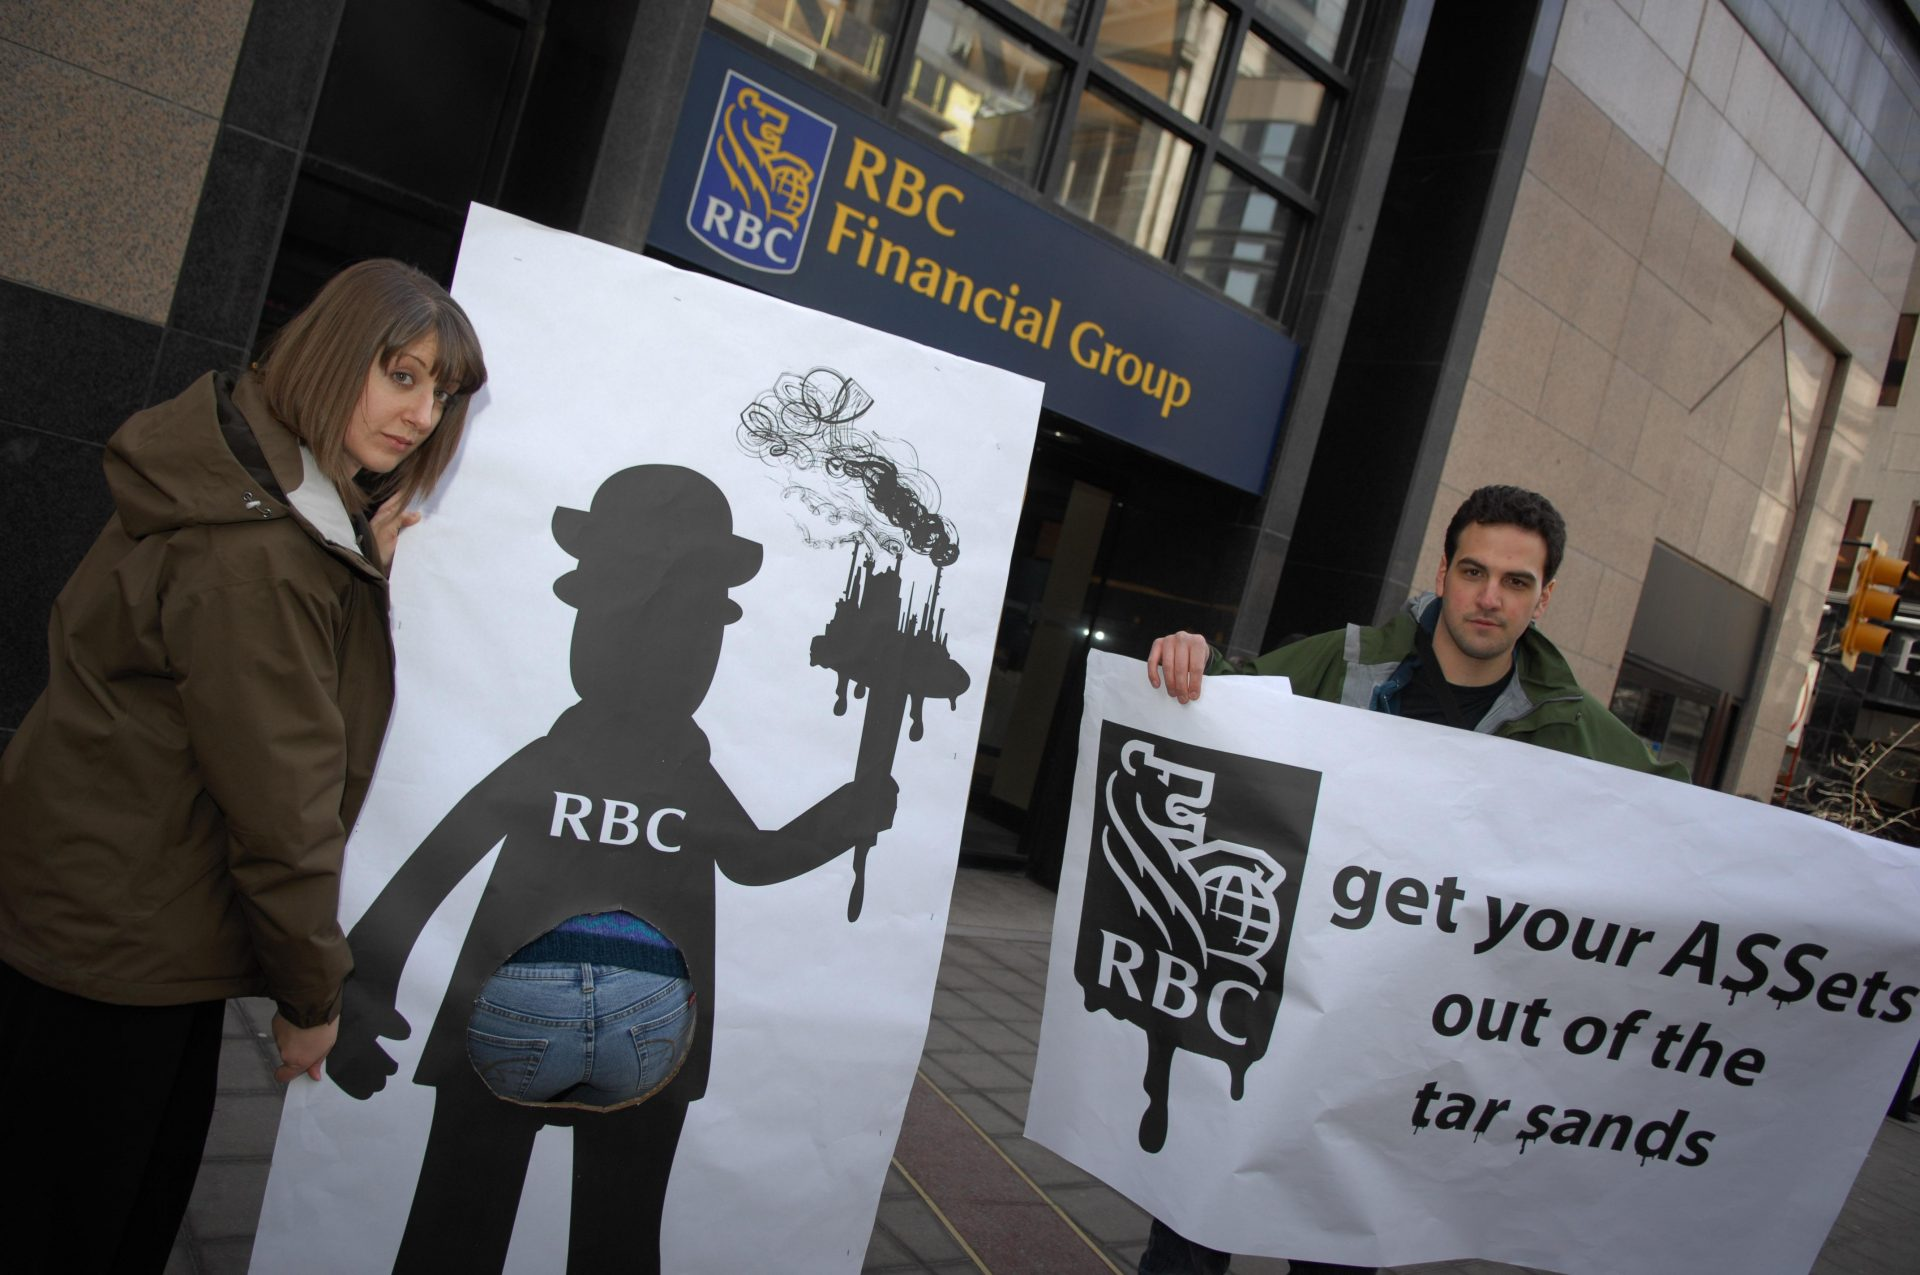 Protestors rallying outside of Royal Bank of Canada's (RBC's) Annual general Shareholder meeting (AGM) in Toronto to demand end to financing tarsands. Credit: Tavis Ford/Flickr | CC 2.0